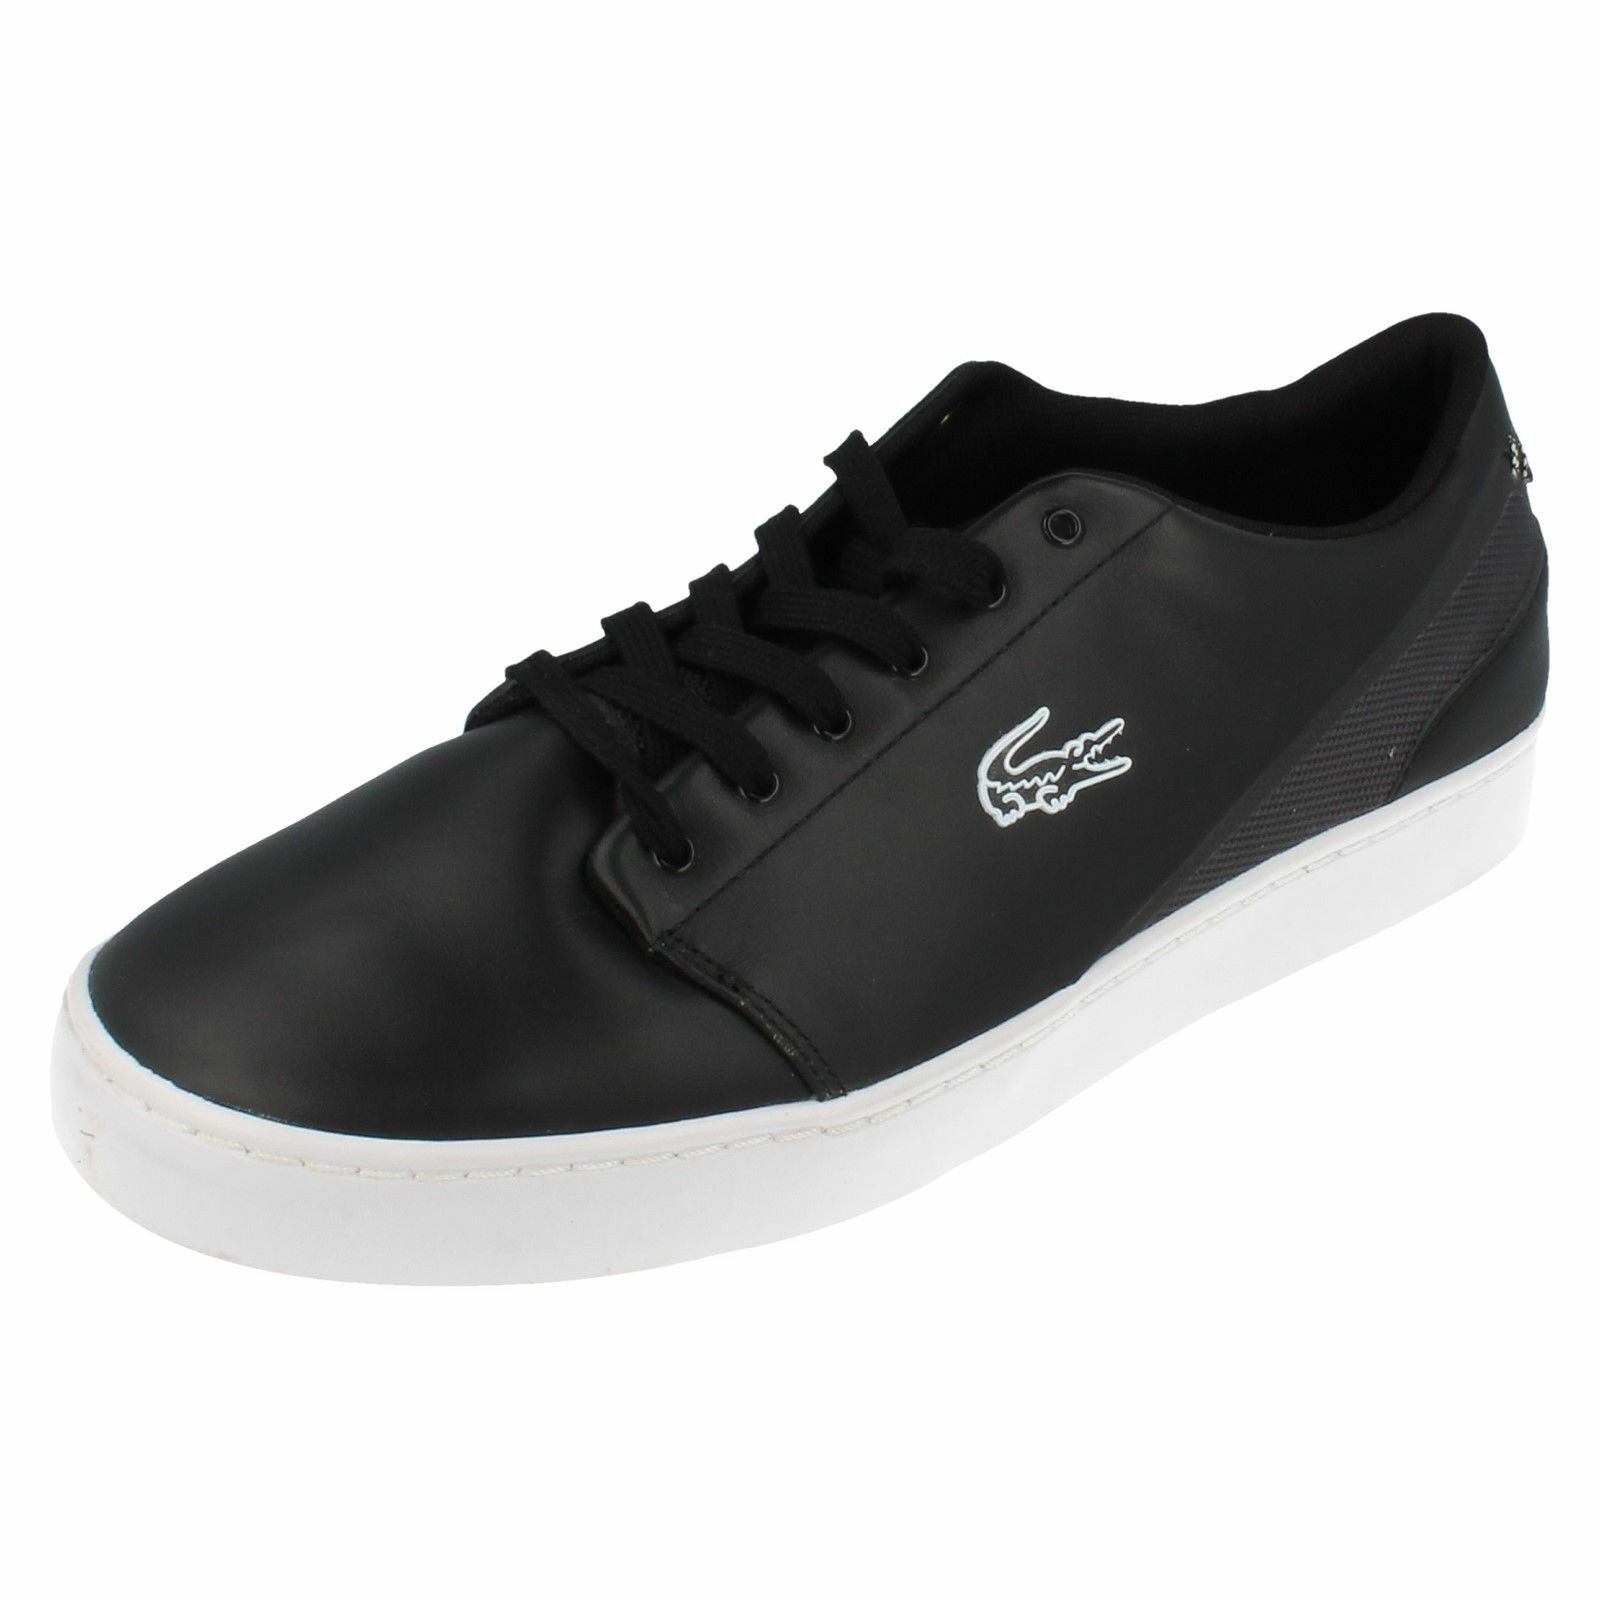 Mens Court Legacy Black/Grey/White Leather/Canvas Trainers by Lacoste retail £45